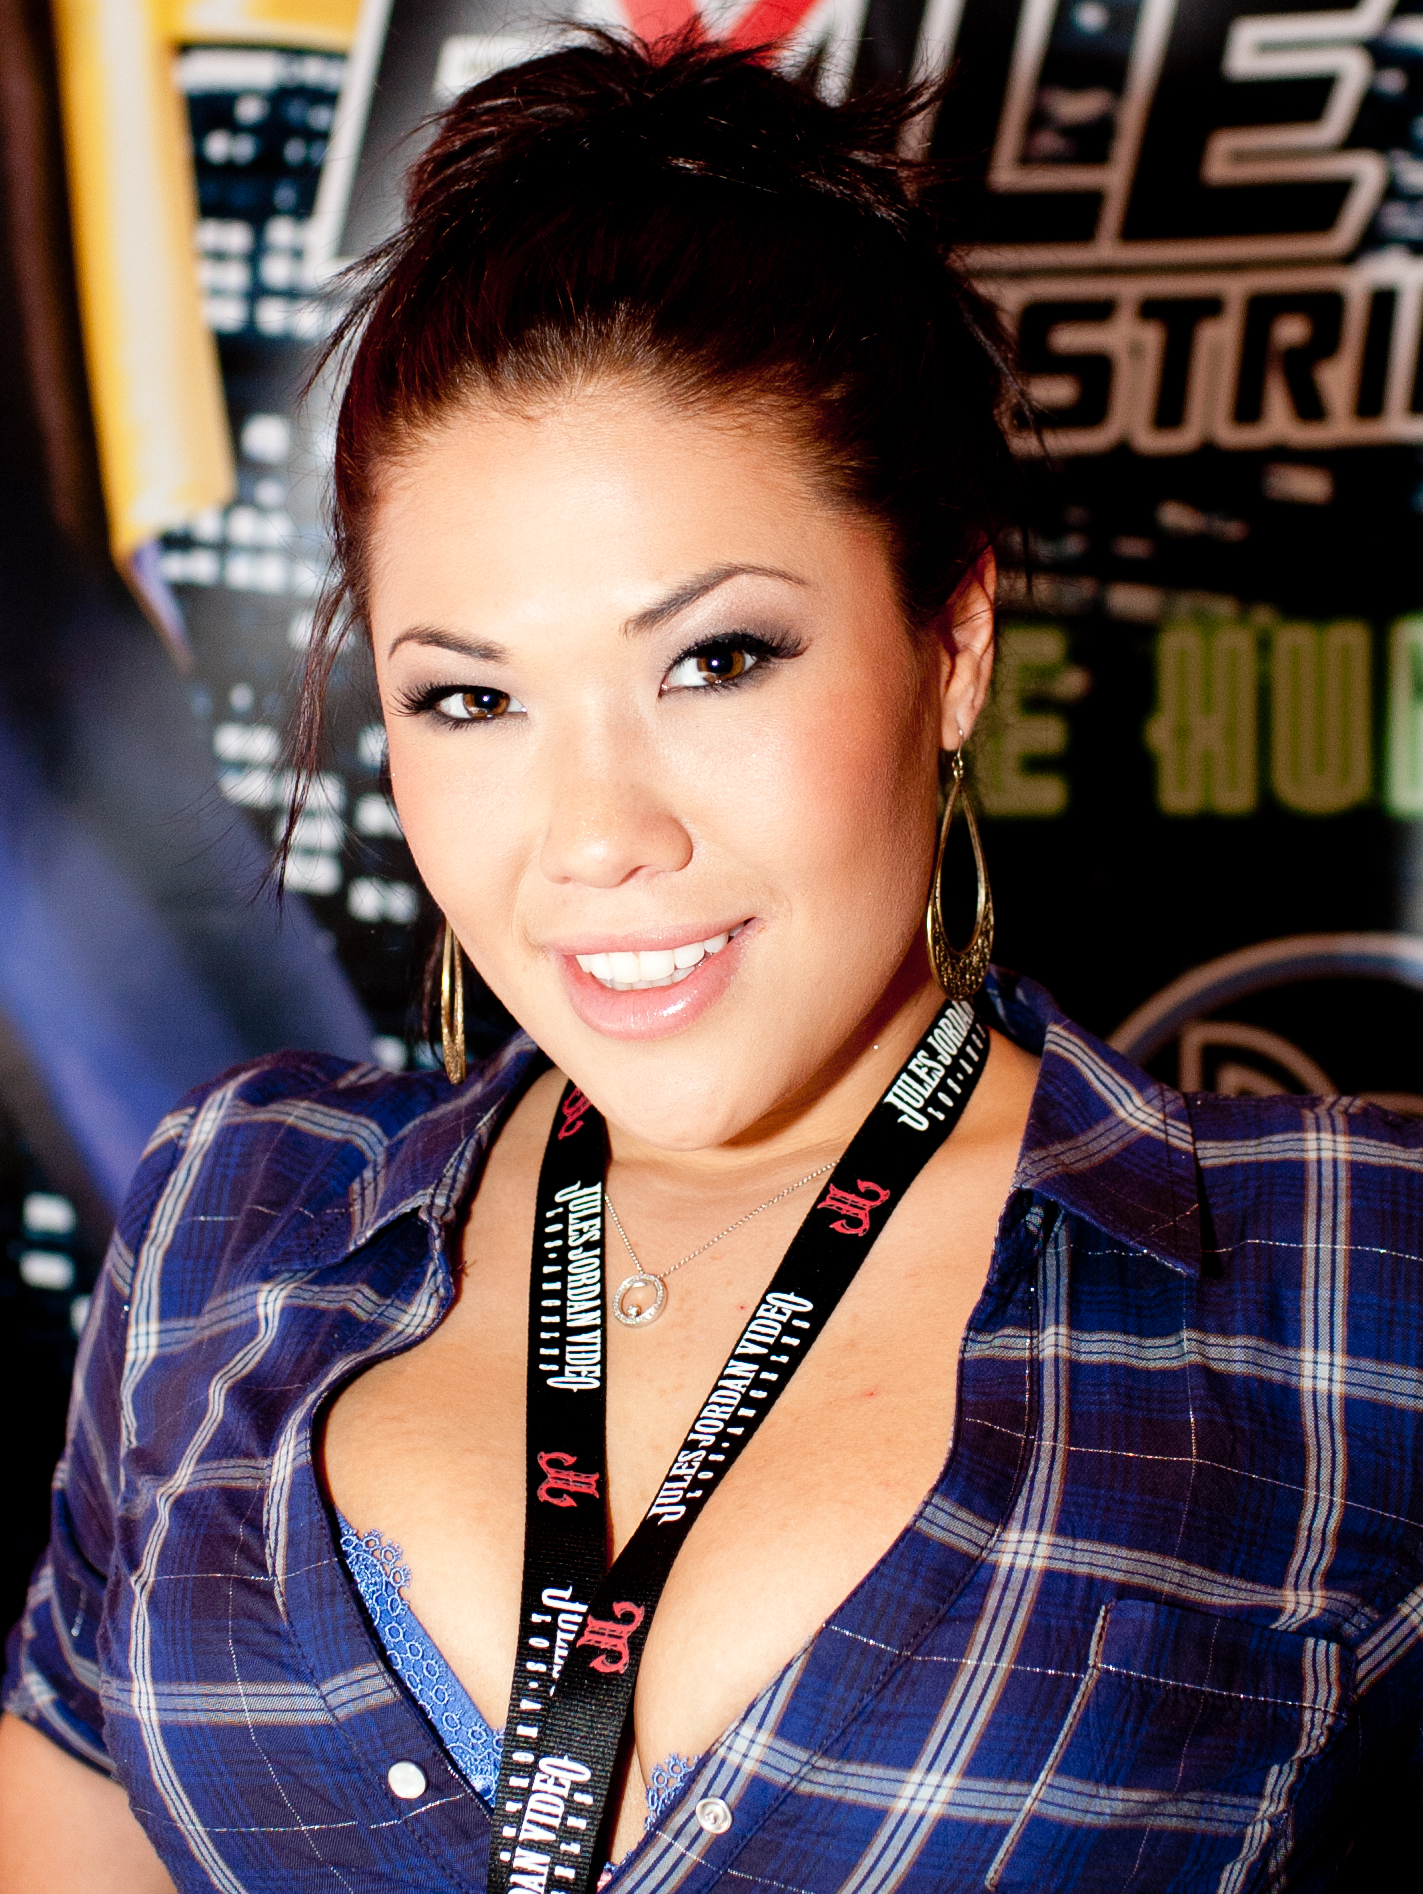 Filelondon Keyes At The Avn Expo  Jpg